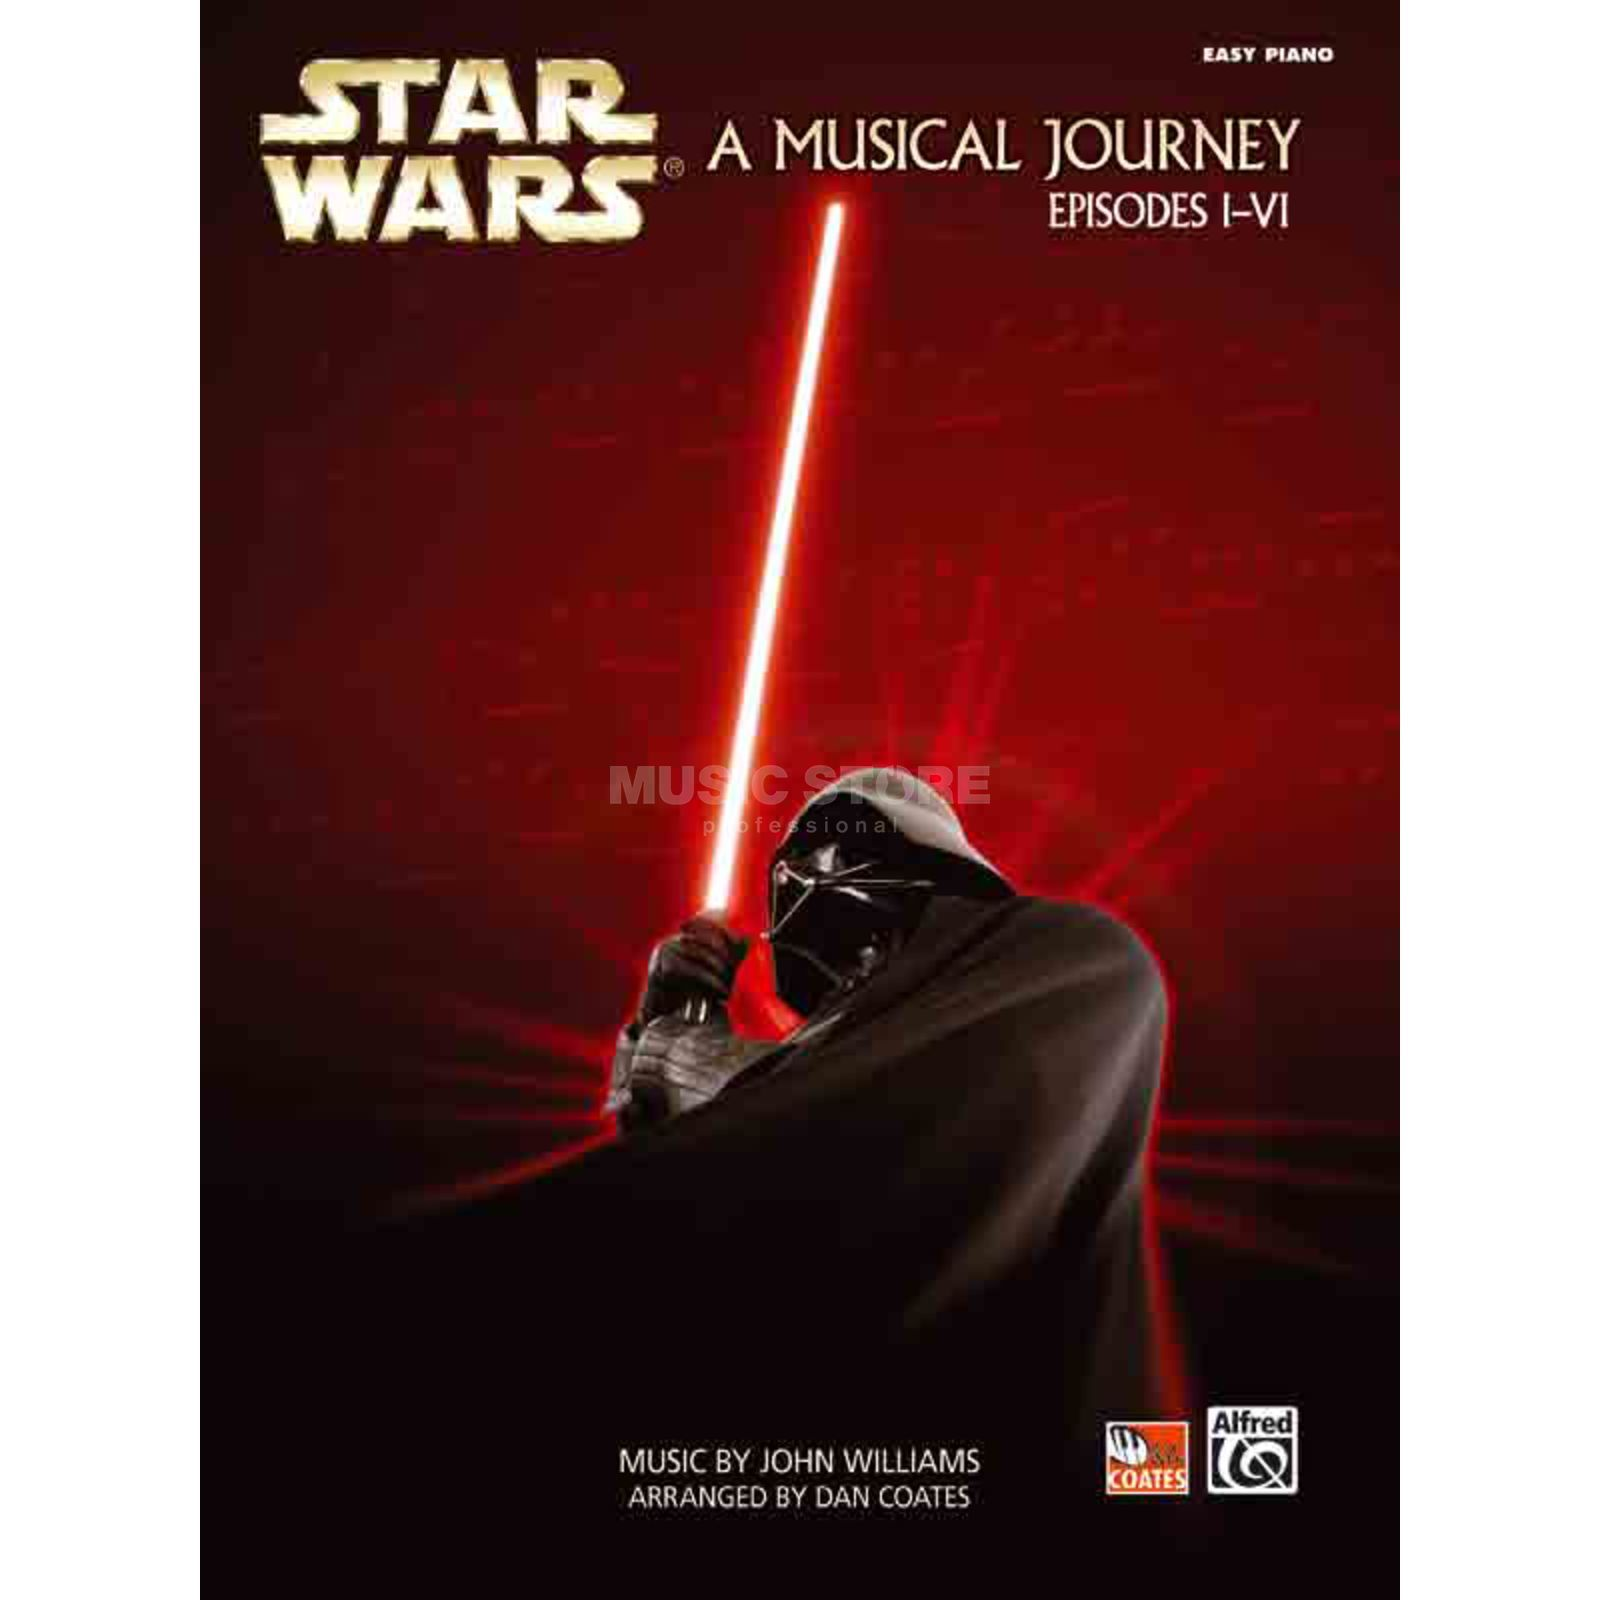 Alfred Music Star Wars A Musical Journey Episodes I-VI - Piano Solo (easy) Produktbillede